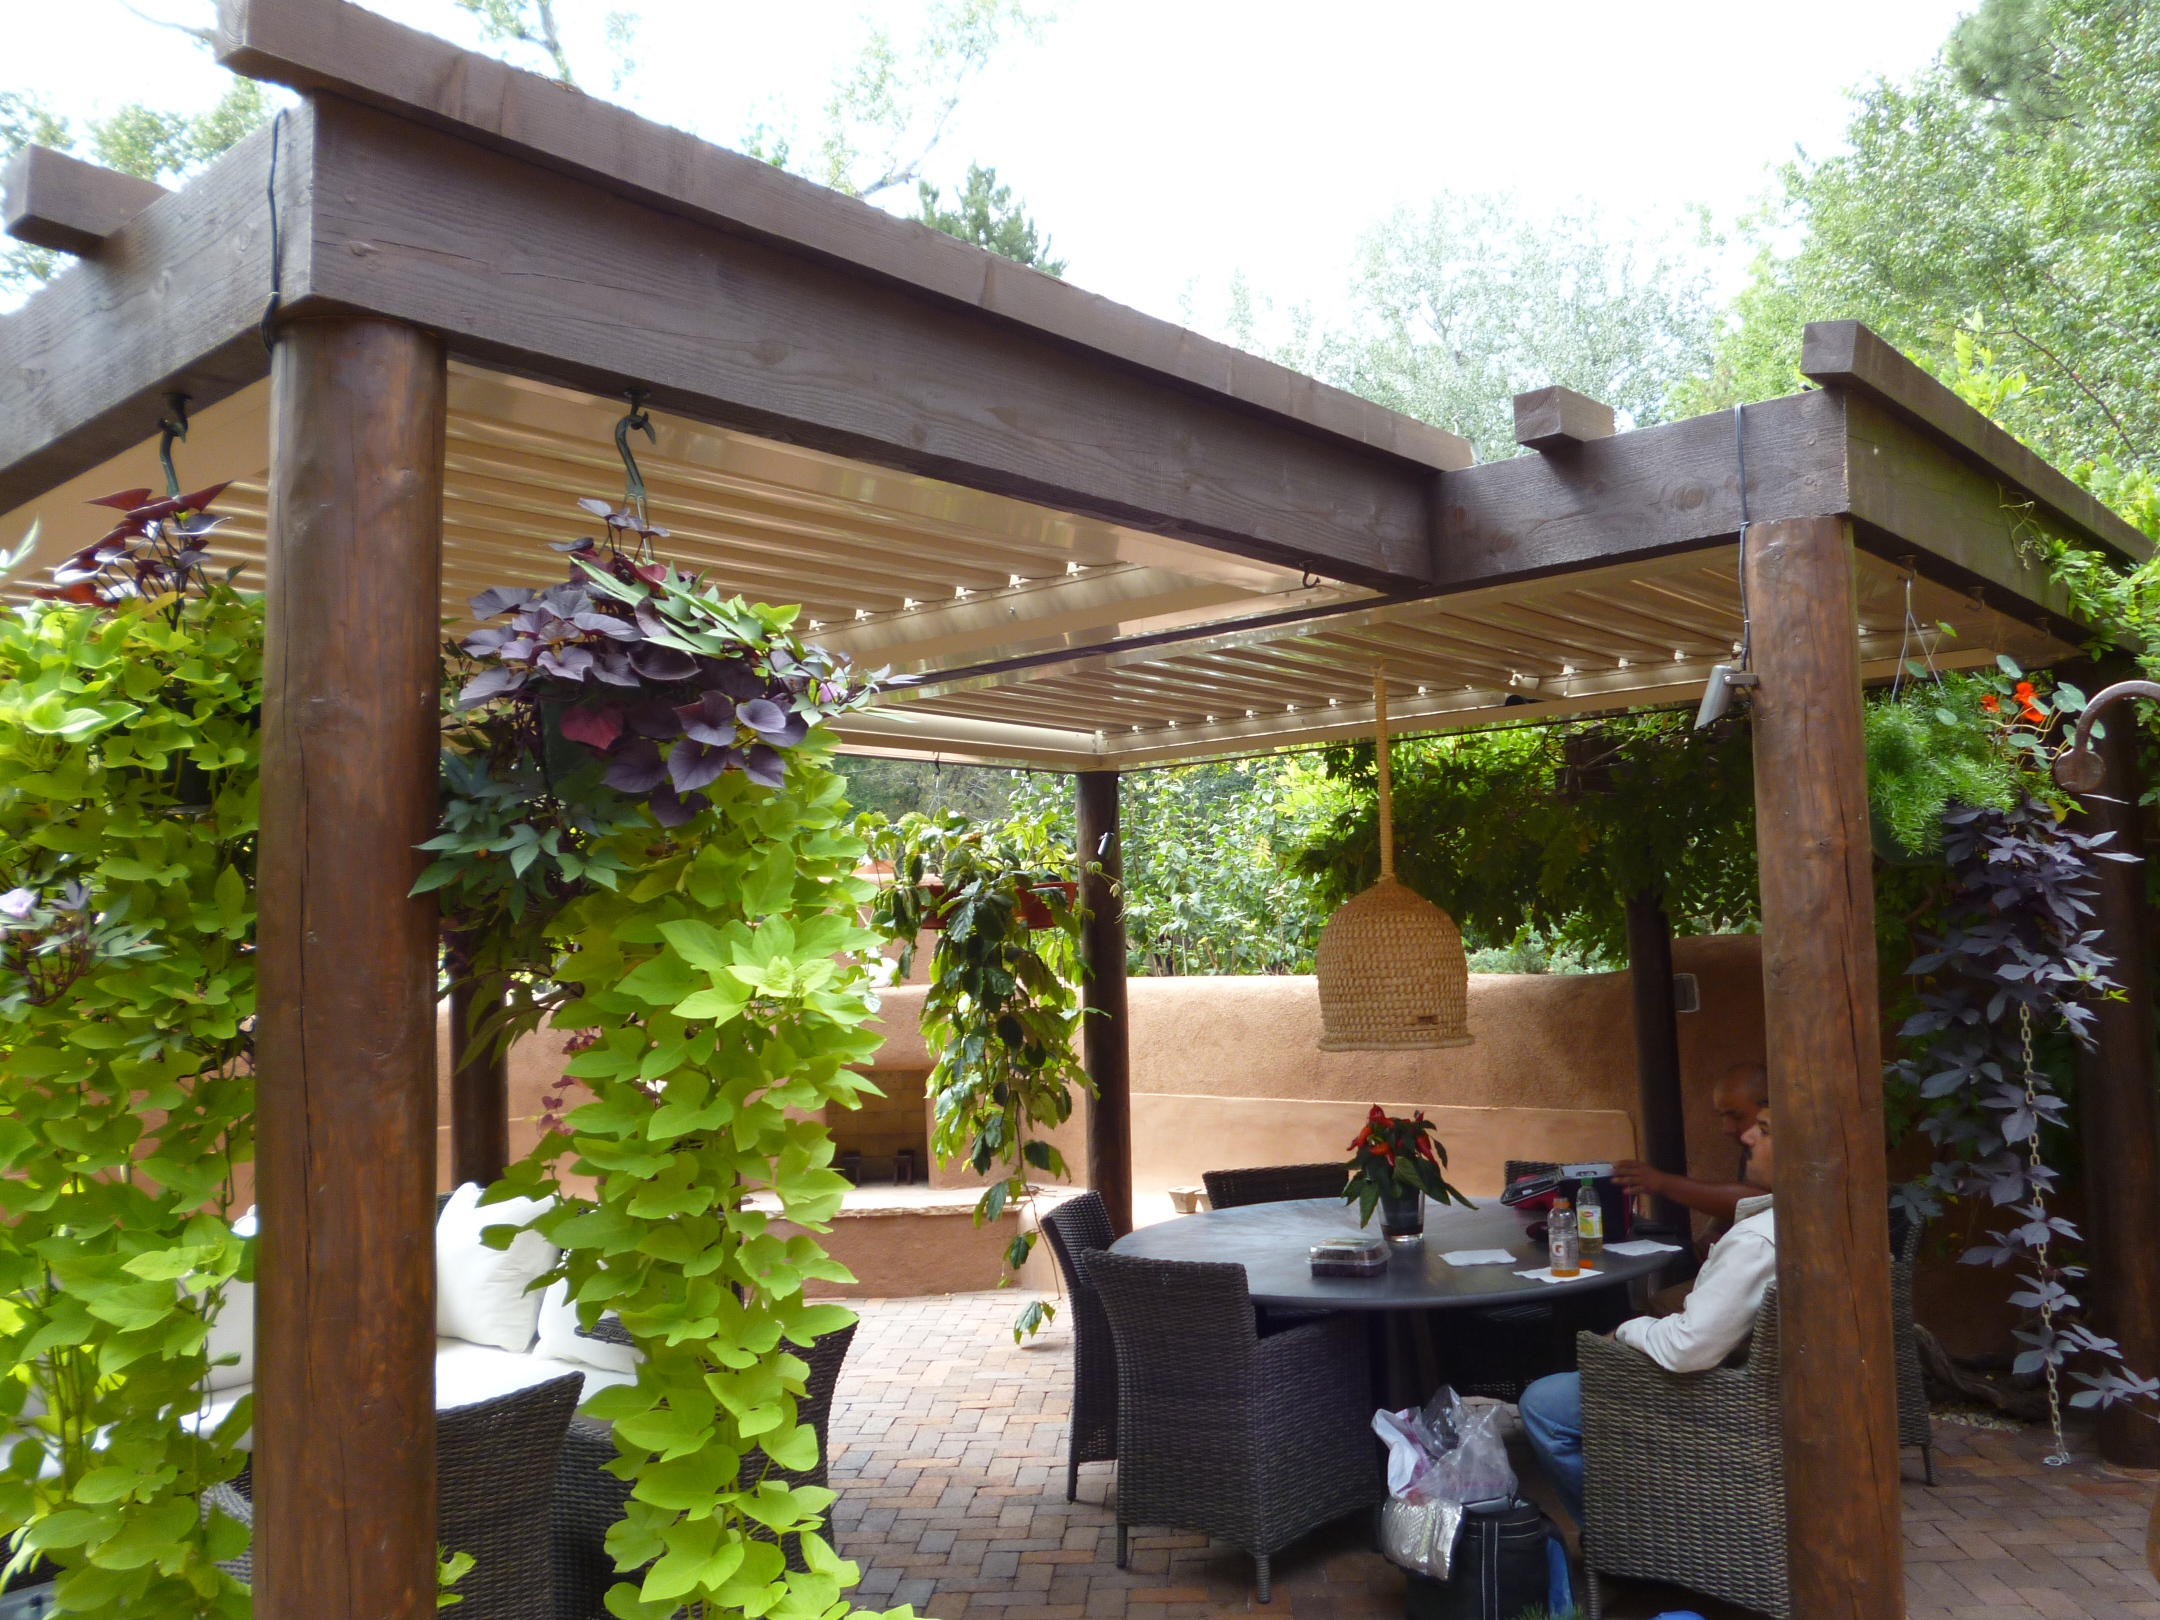 Wooden Patio Covers Design - HomesFeed on Patio Cover Ideas Images id=61770